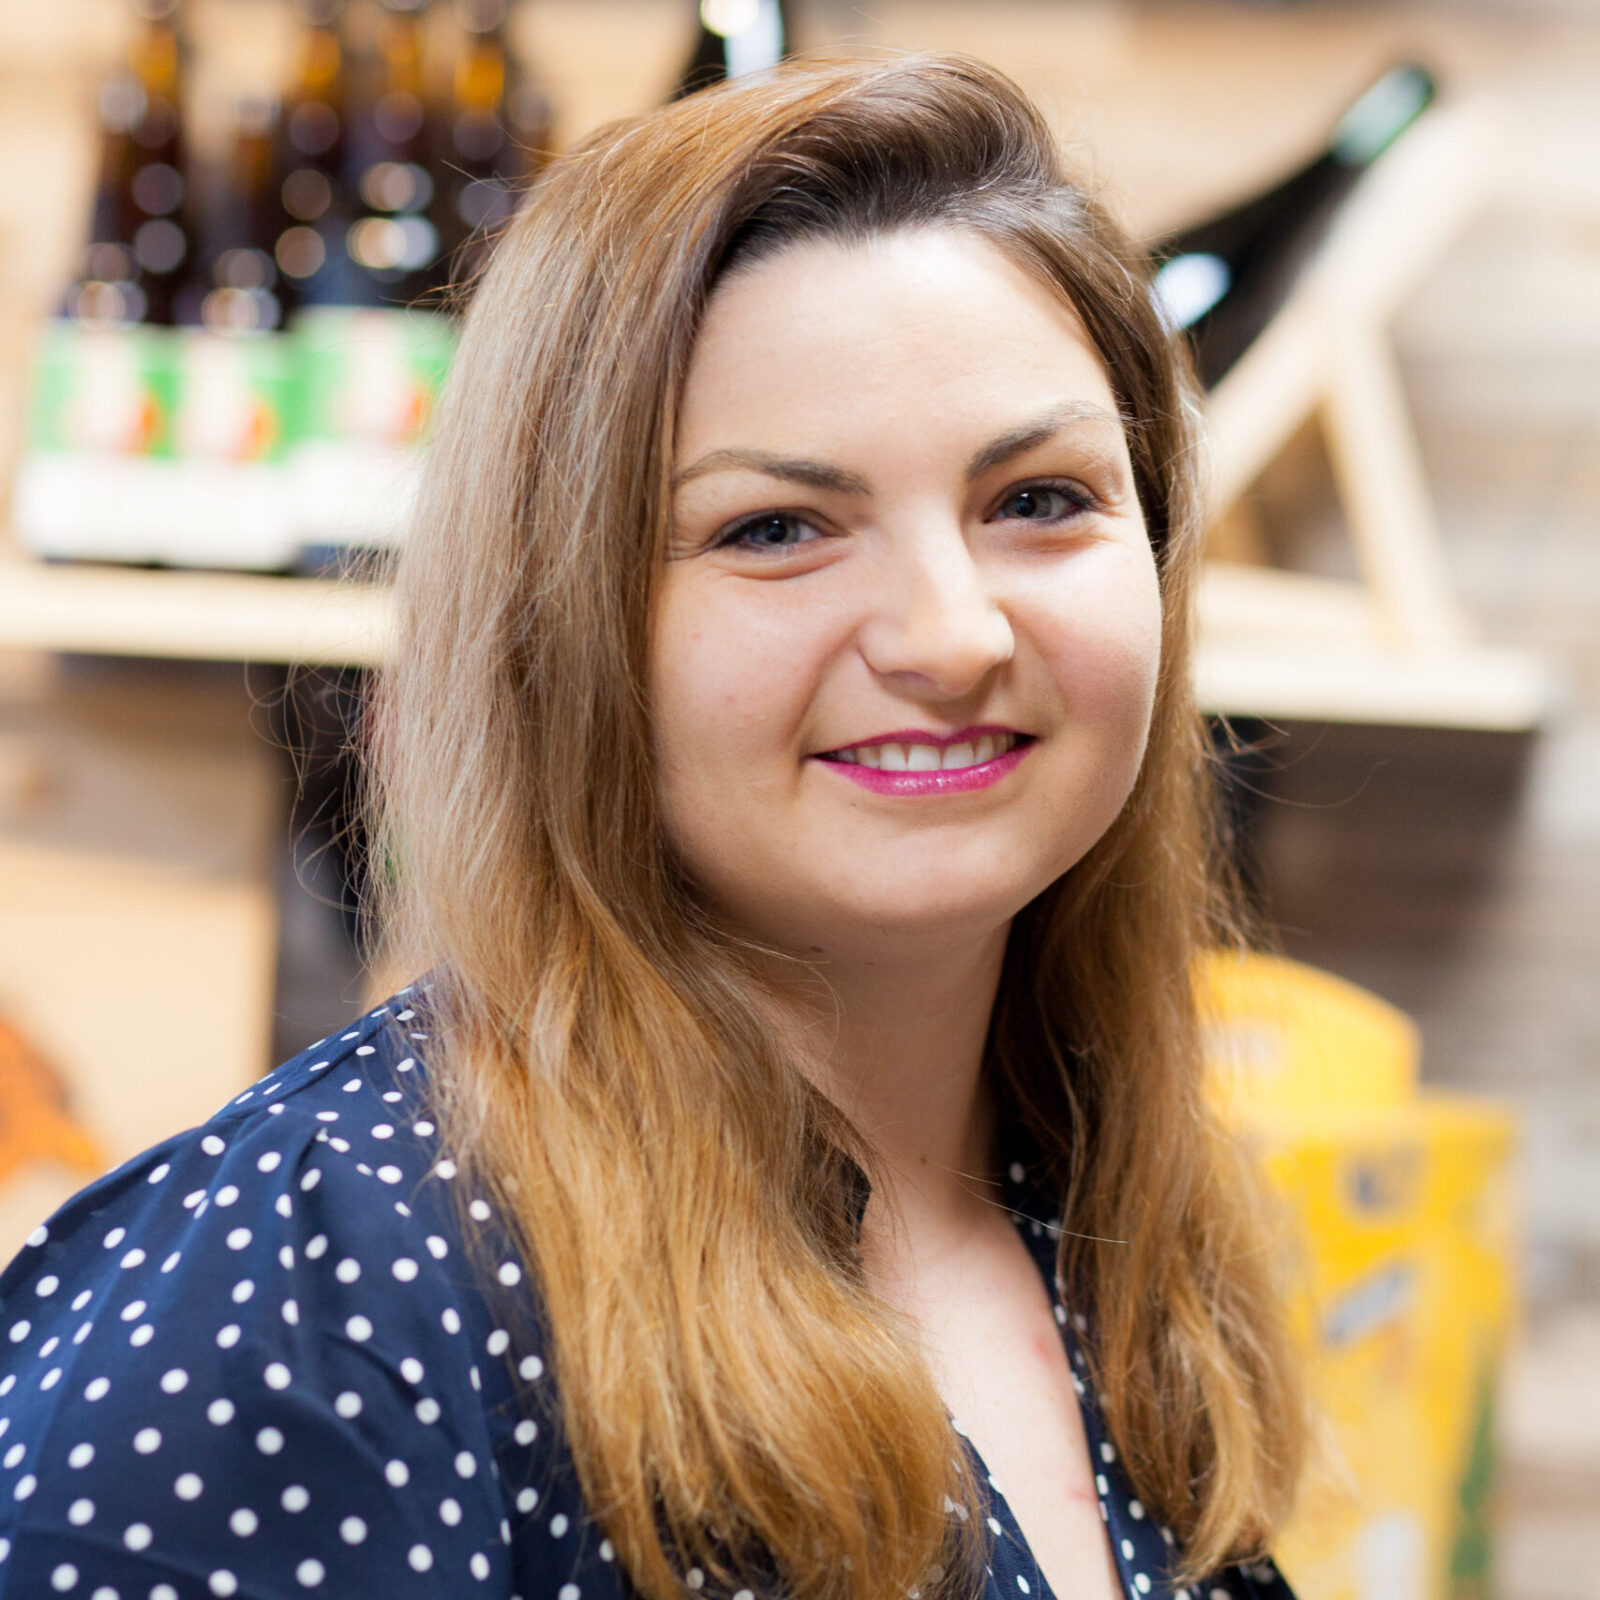 Marie - Responsable Maccenzo Beer